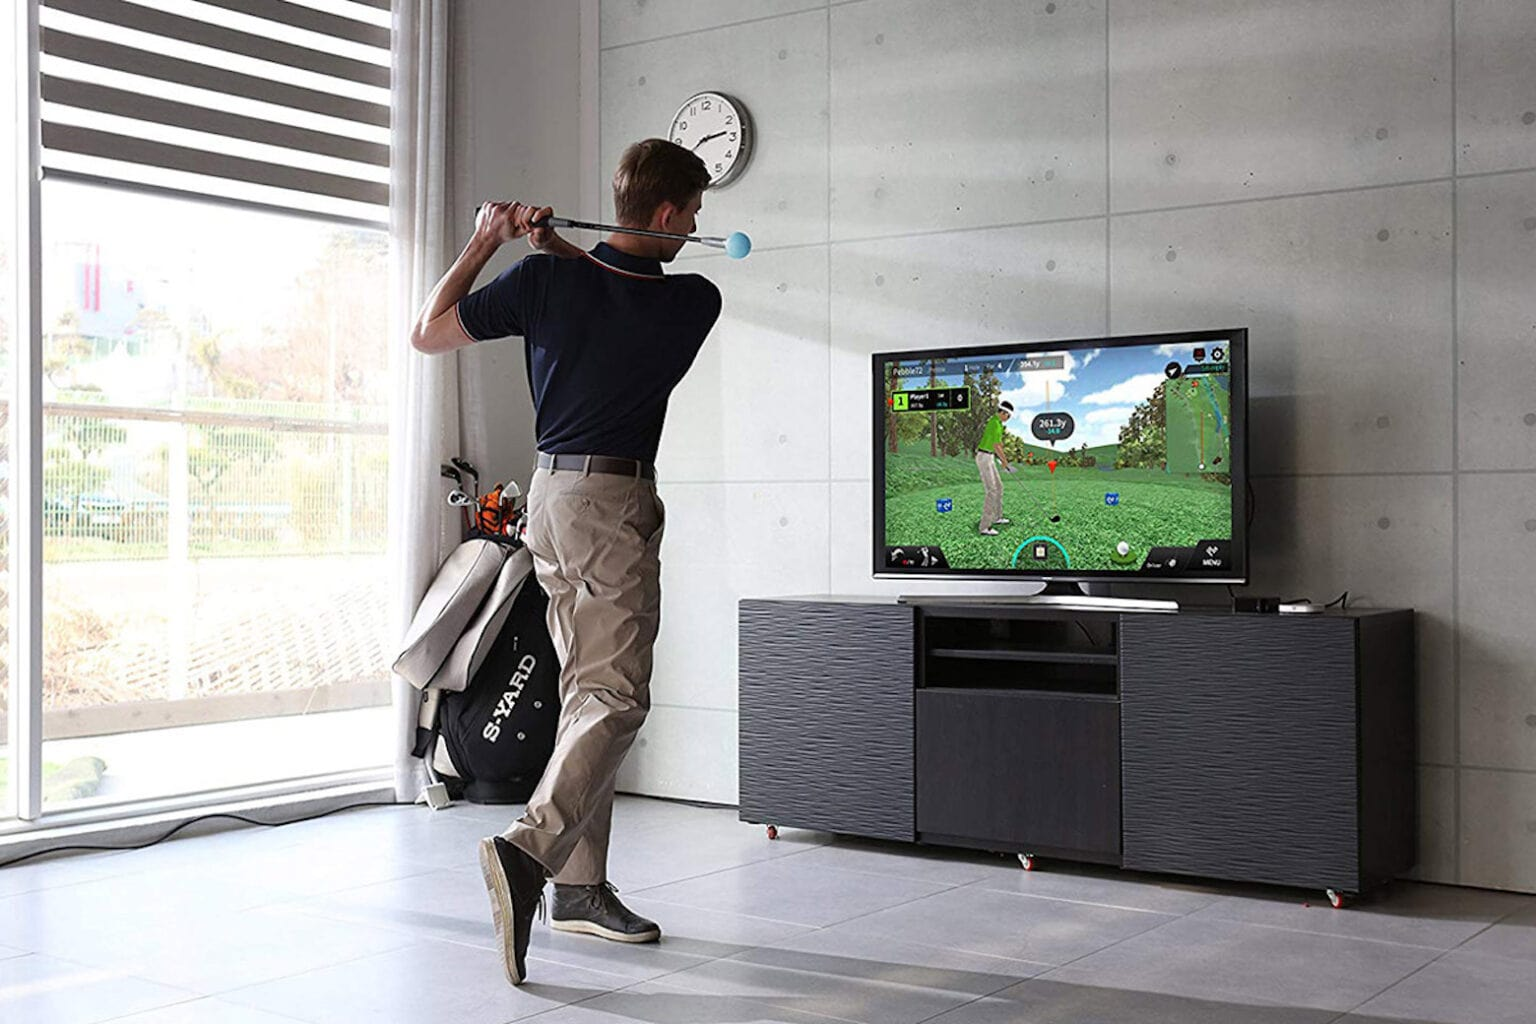 Improve your golf swing with this virtual simulator.